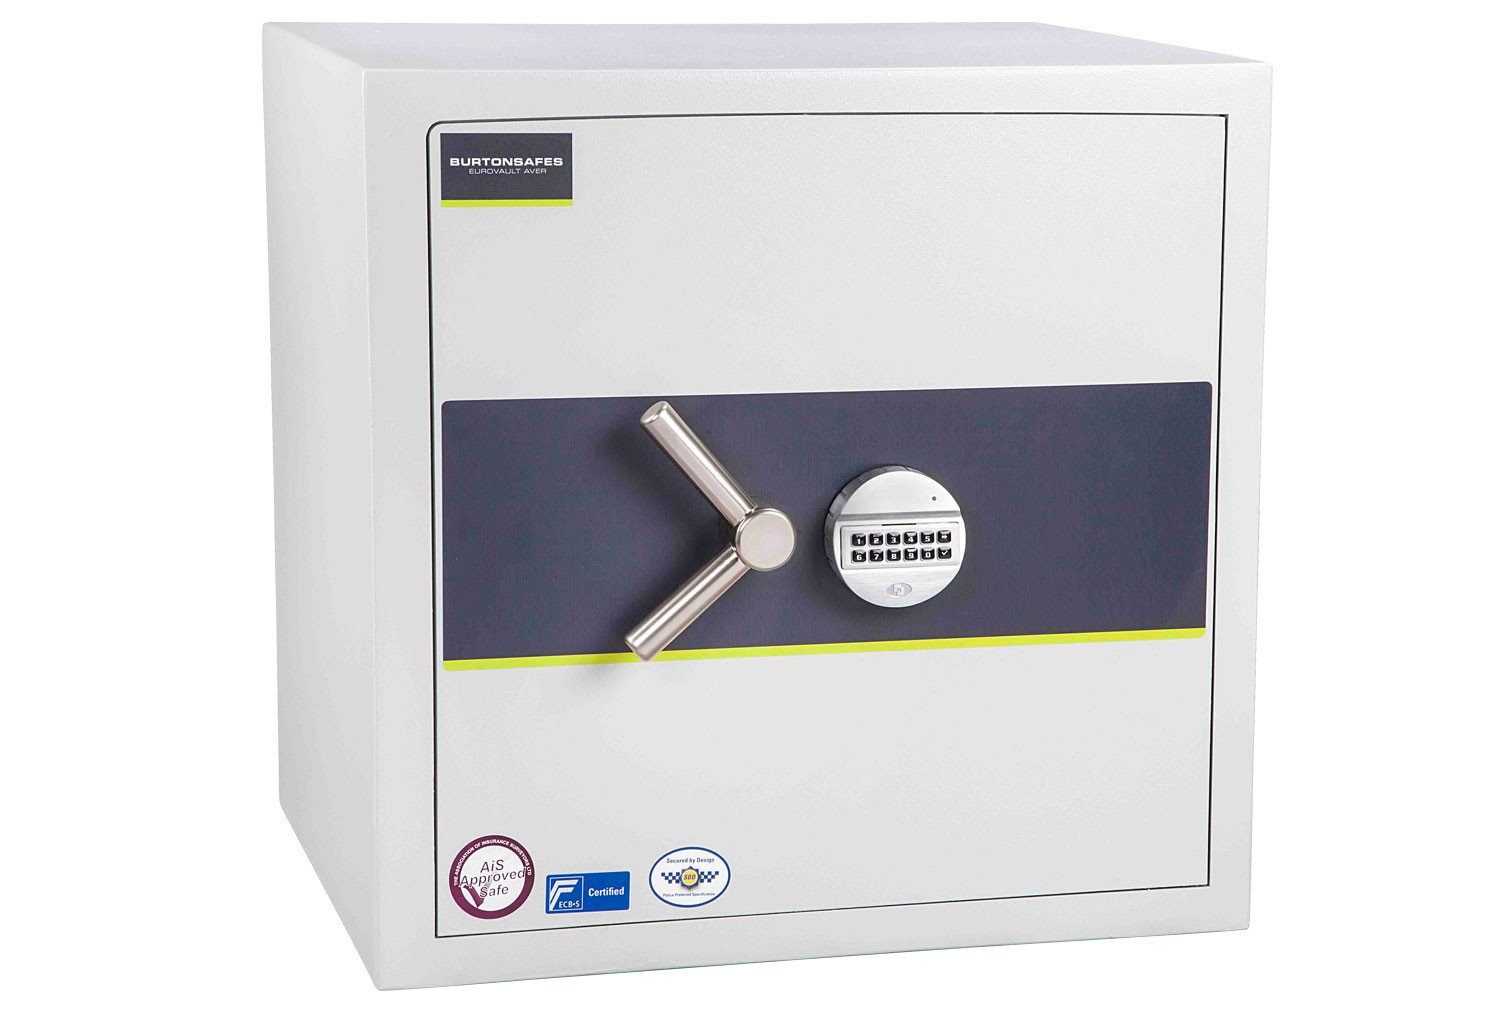 Burton Eurovault Aver Grade 1 Size 5 Safe With Electronic Lock (160ltrs)